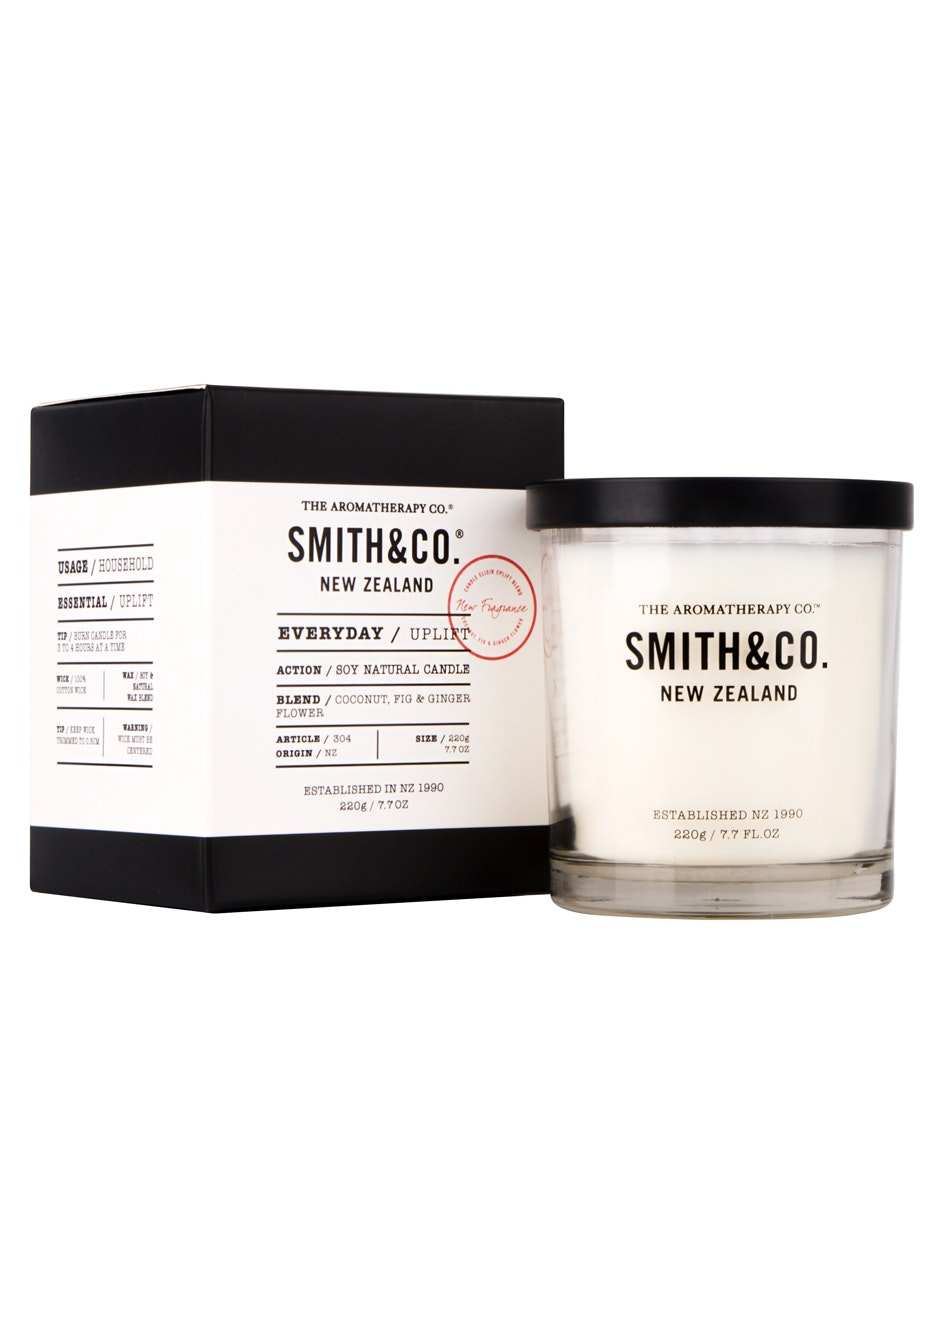 The Aromatherapy Co. Smith & Co. Candle - Uplift